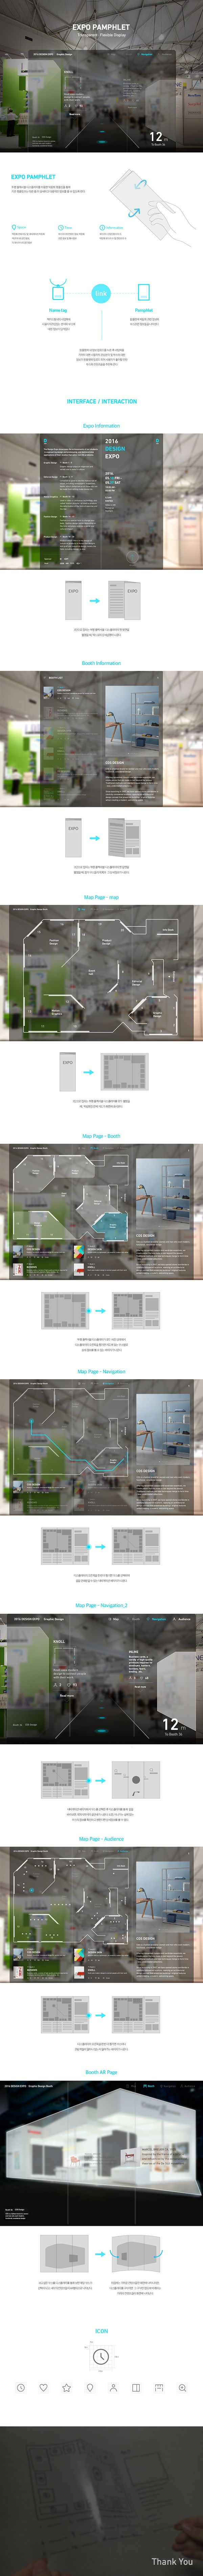 Transparent Flexible Display_EXPO PAMPHLET